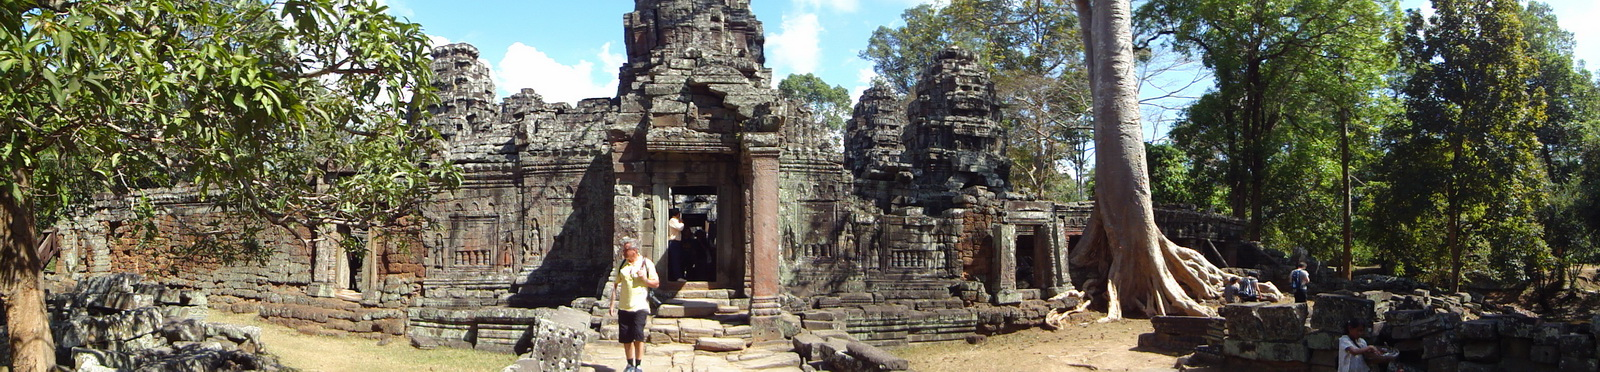 D Banteay Kdei Temple Gopuram W Entry towers main sanctuary 01